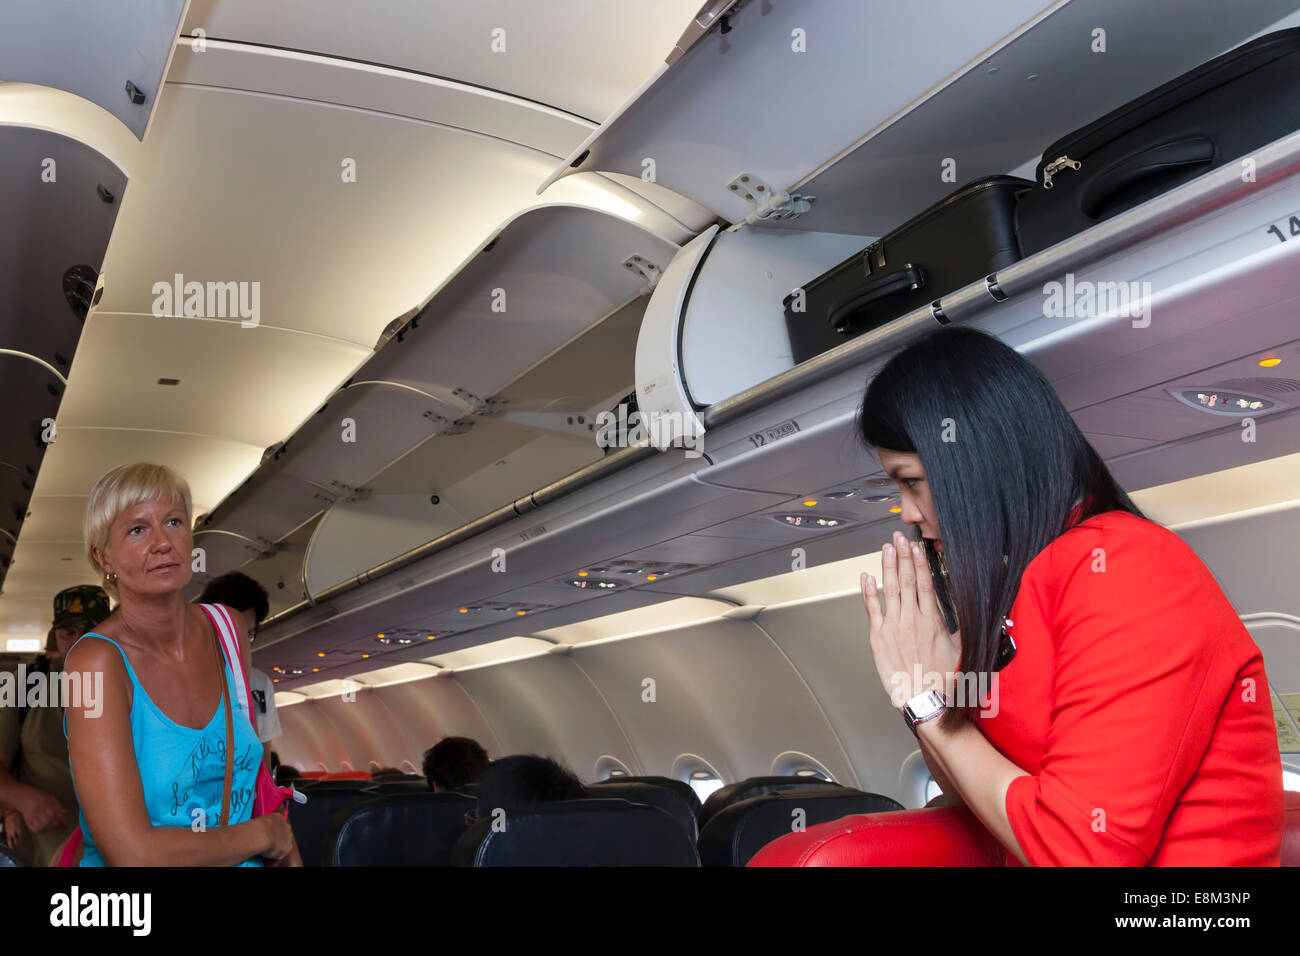 Air Asia flight attendant and passengers, on a flight from Phnom Penh, Cambodia to Bangkok, Thailand - Stock Image